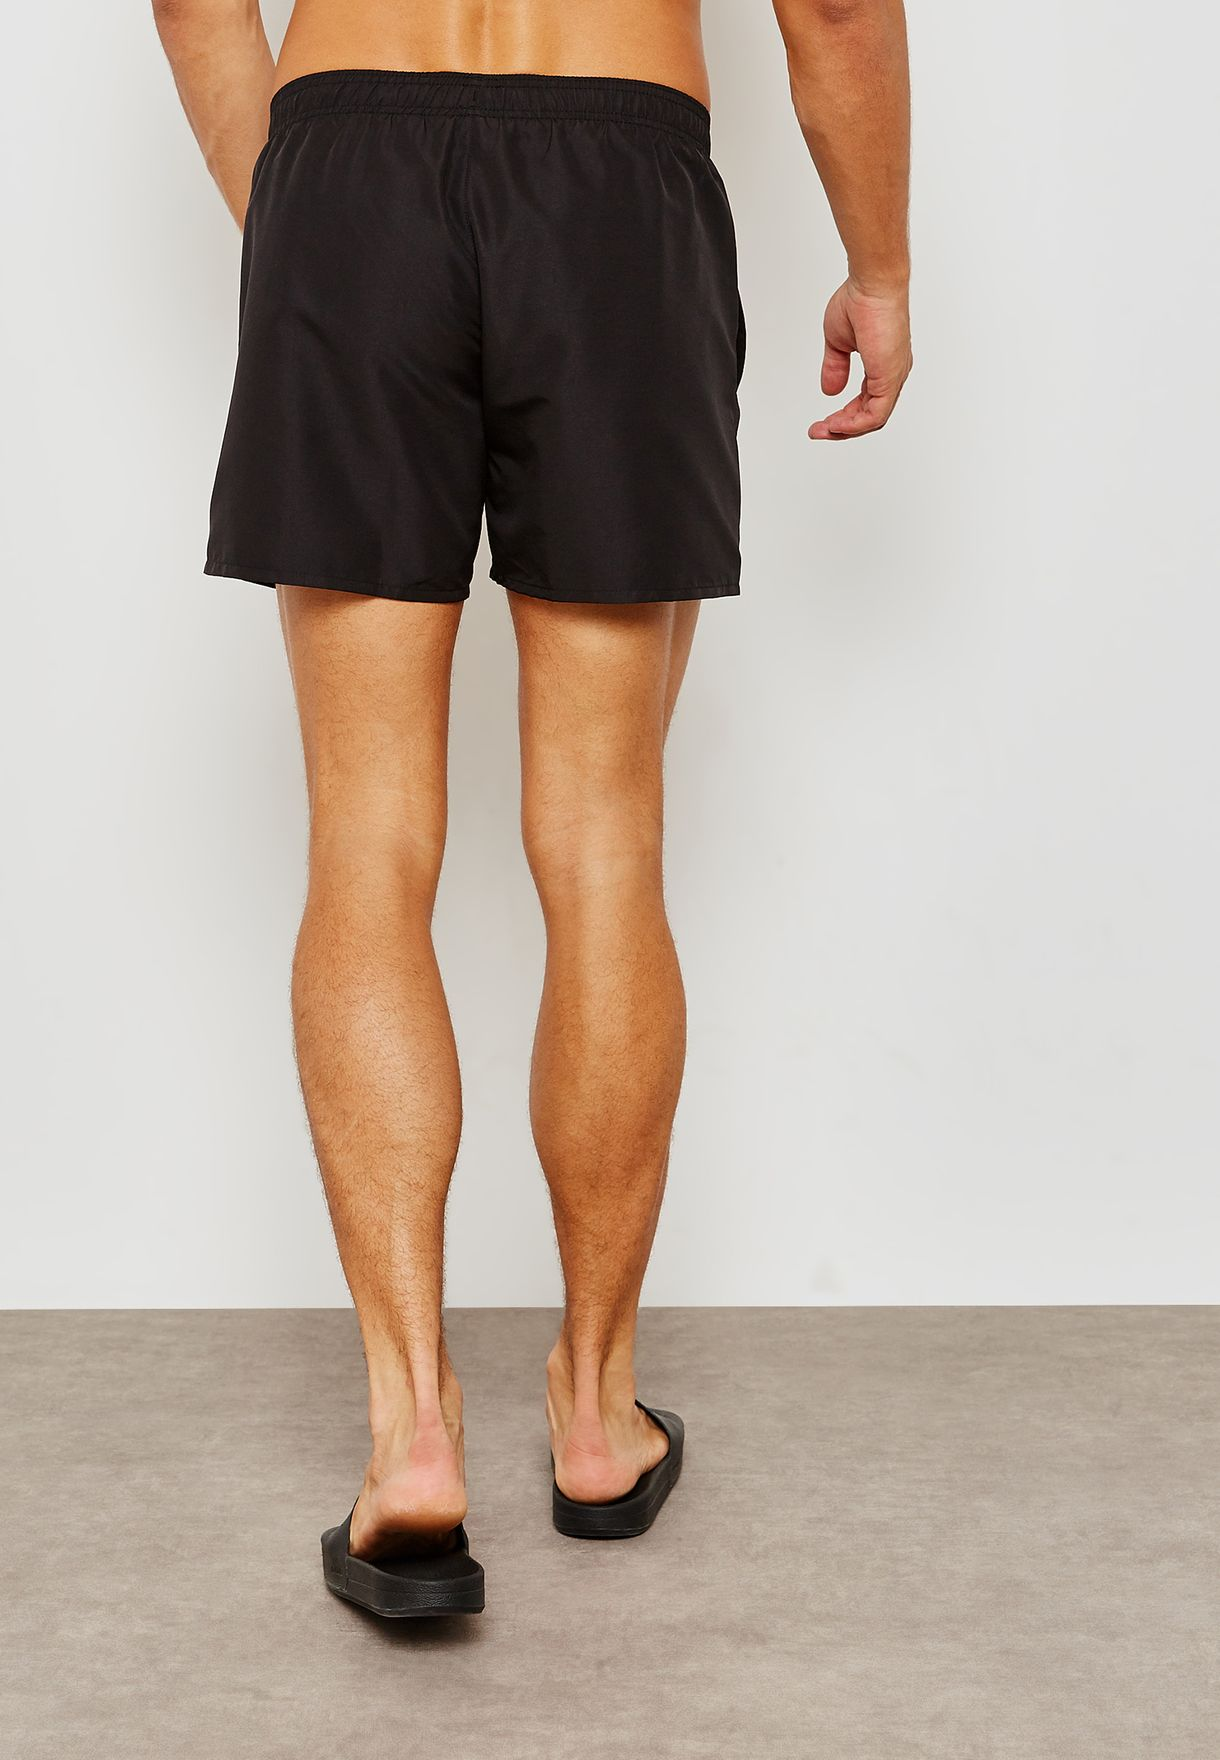 Sea World Shorts